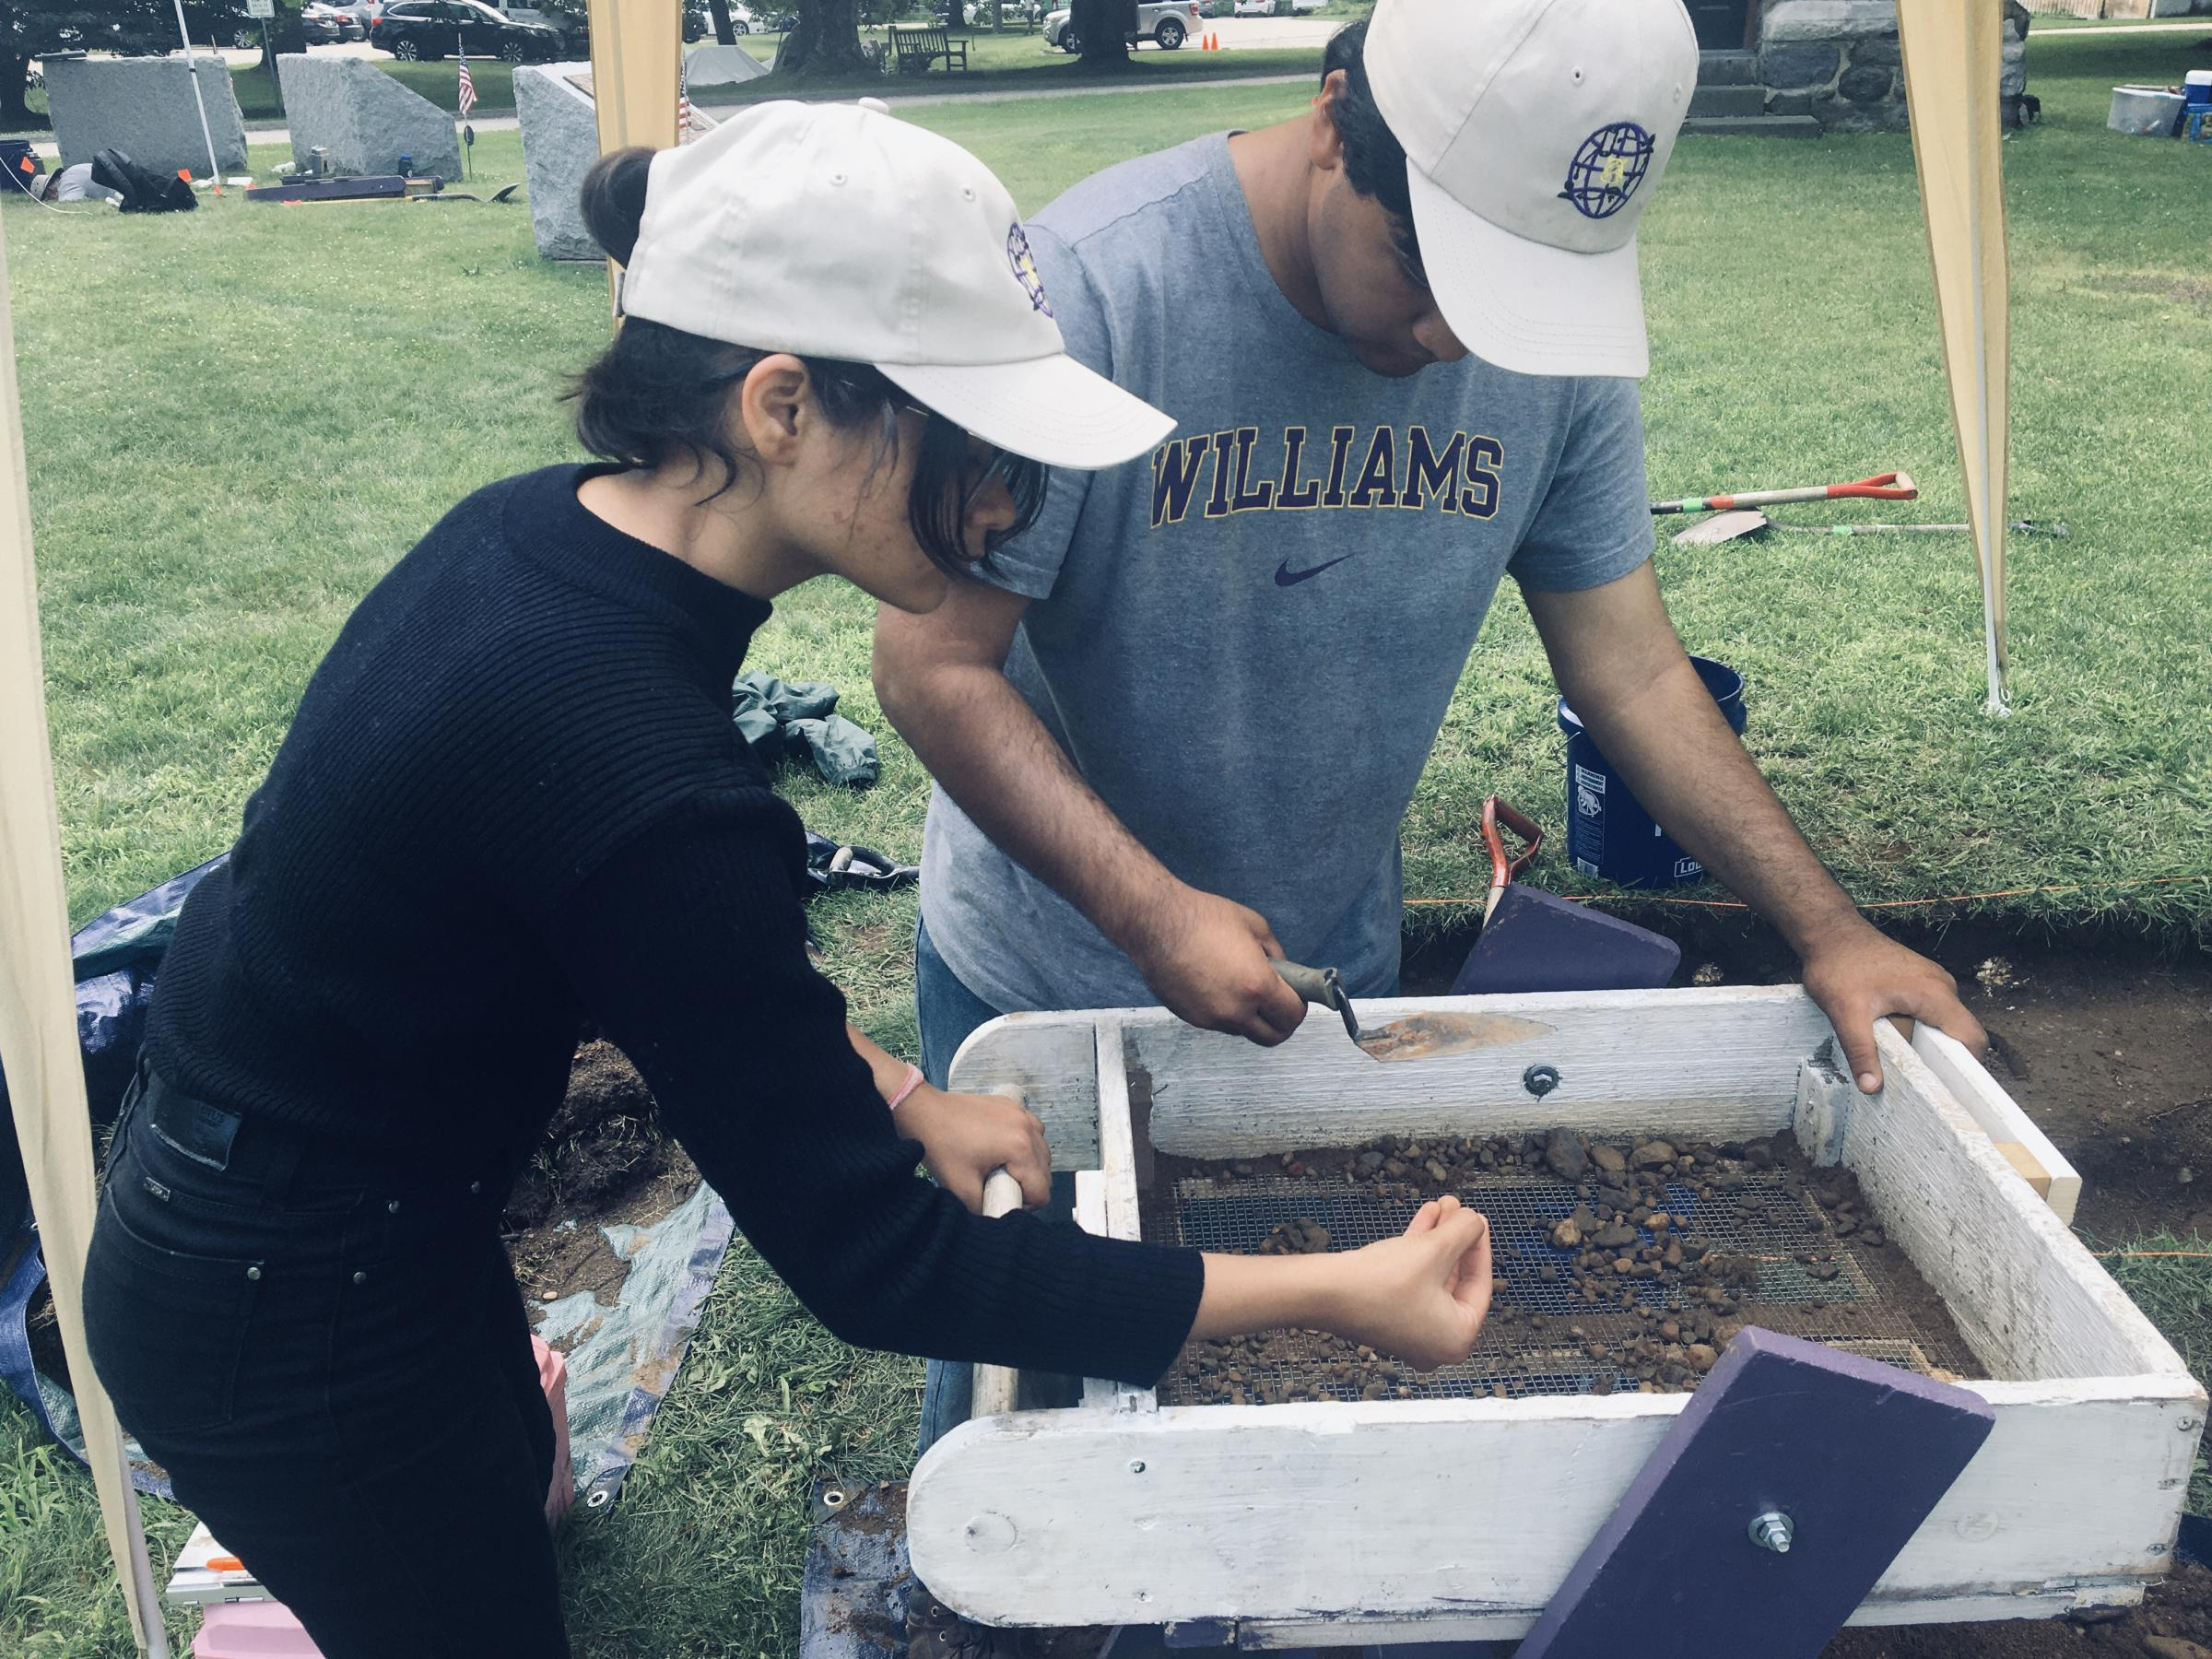 Williams College students Devika Goel and Hikaru Hayakawa work on the archaeological dig in Stockbridge, Massachusetts, organized by the Stockbridge-Munsee Band of Mohican Indians. (Nancy Eve Cohen/NEPM)